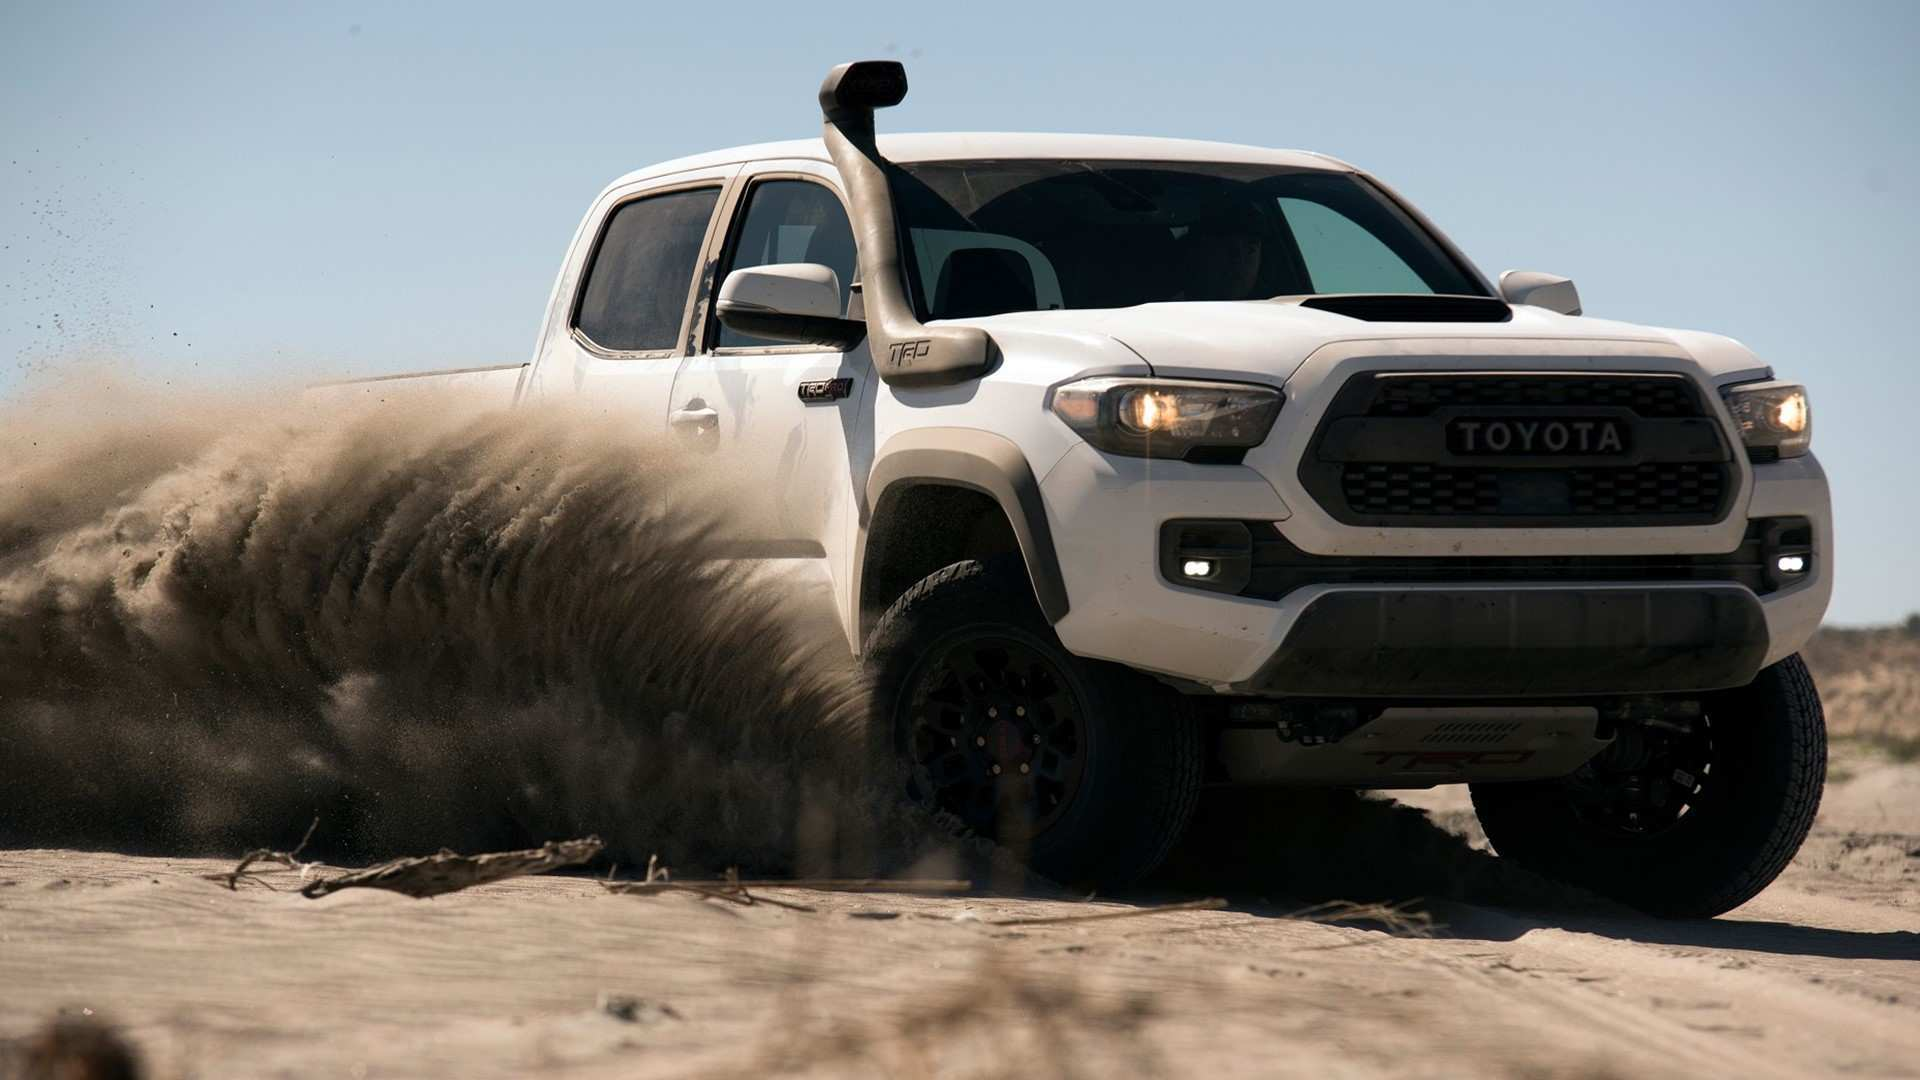 96 The Best 2019 Toyota Tacoma Diesel Trd Pro Ratings